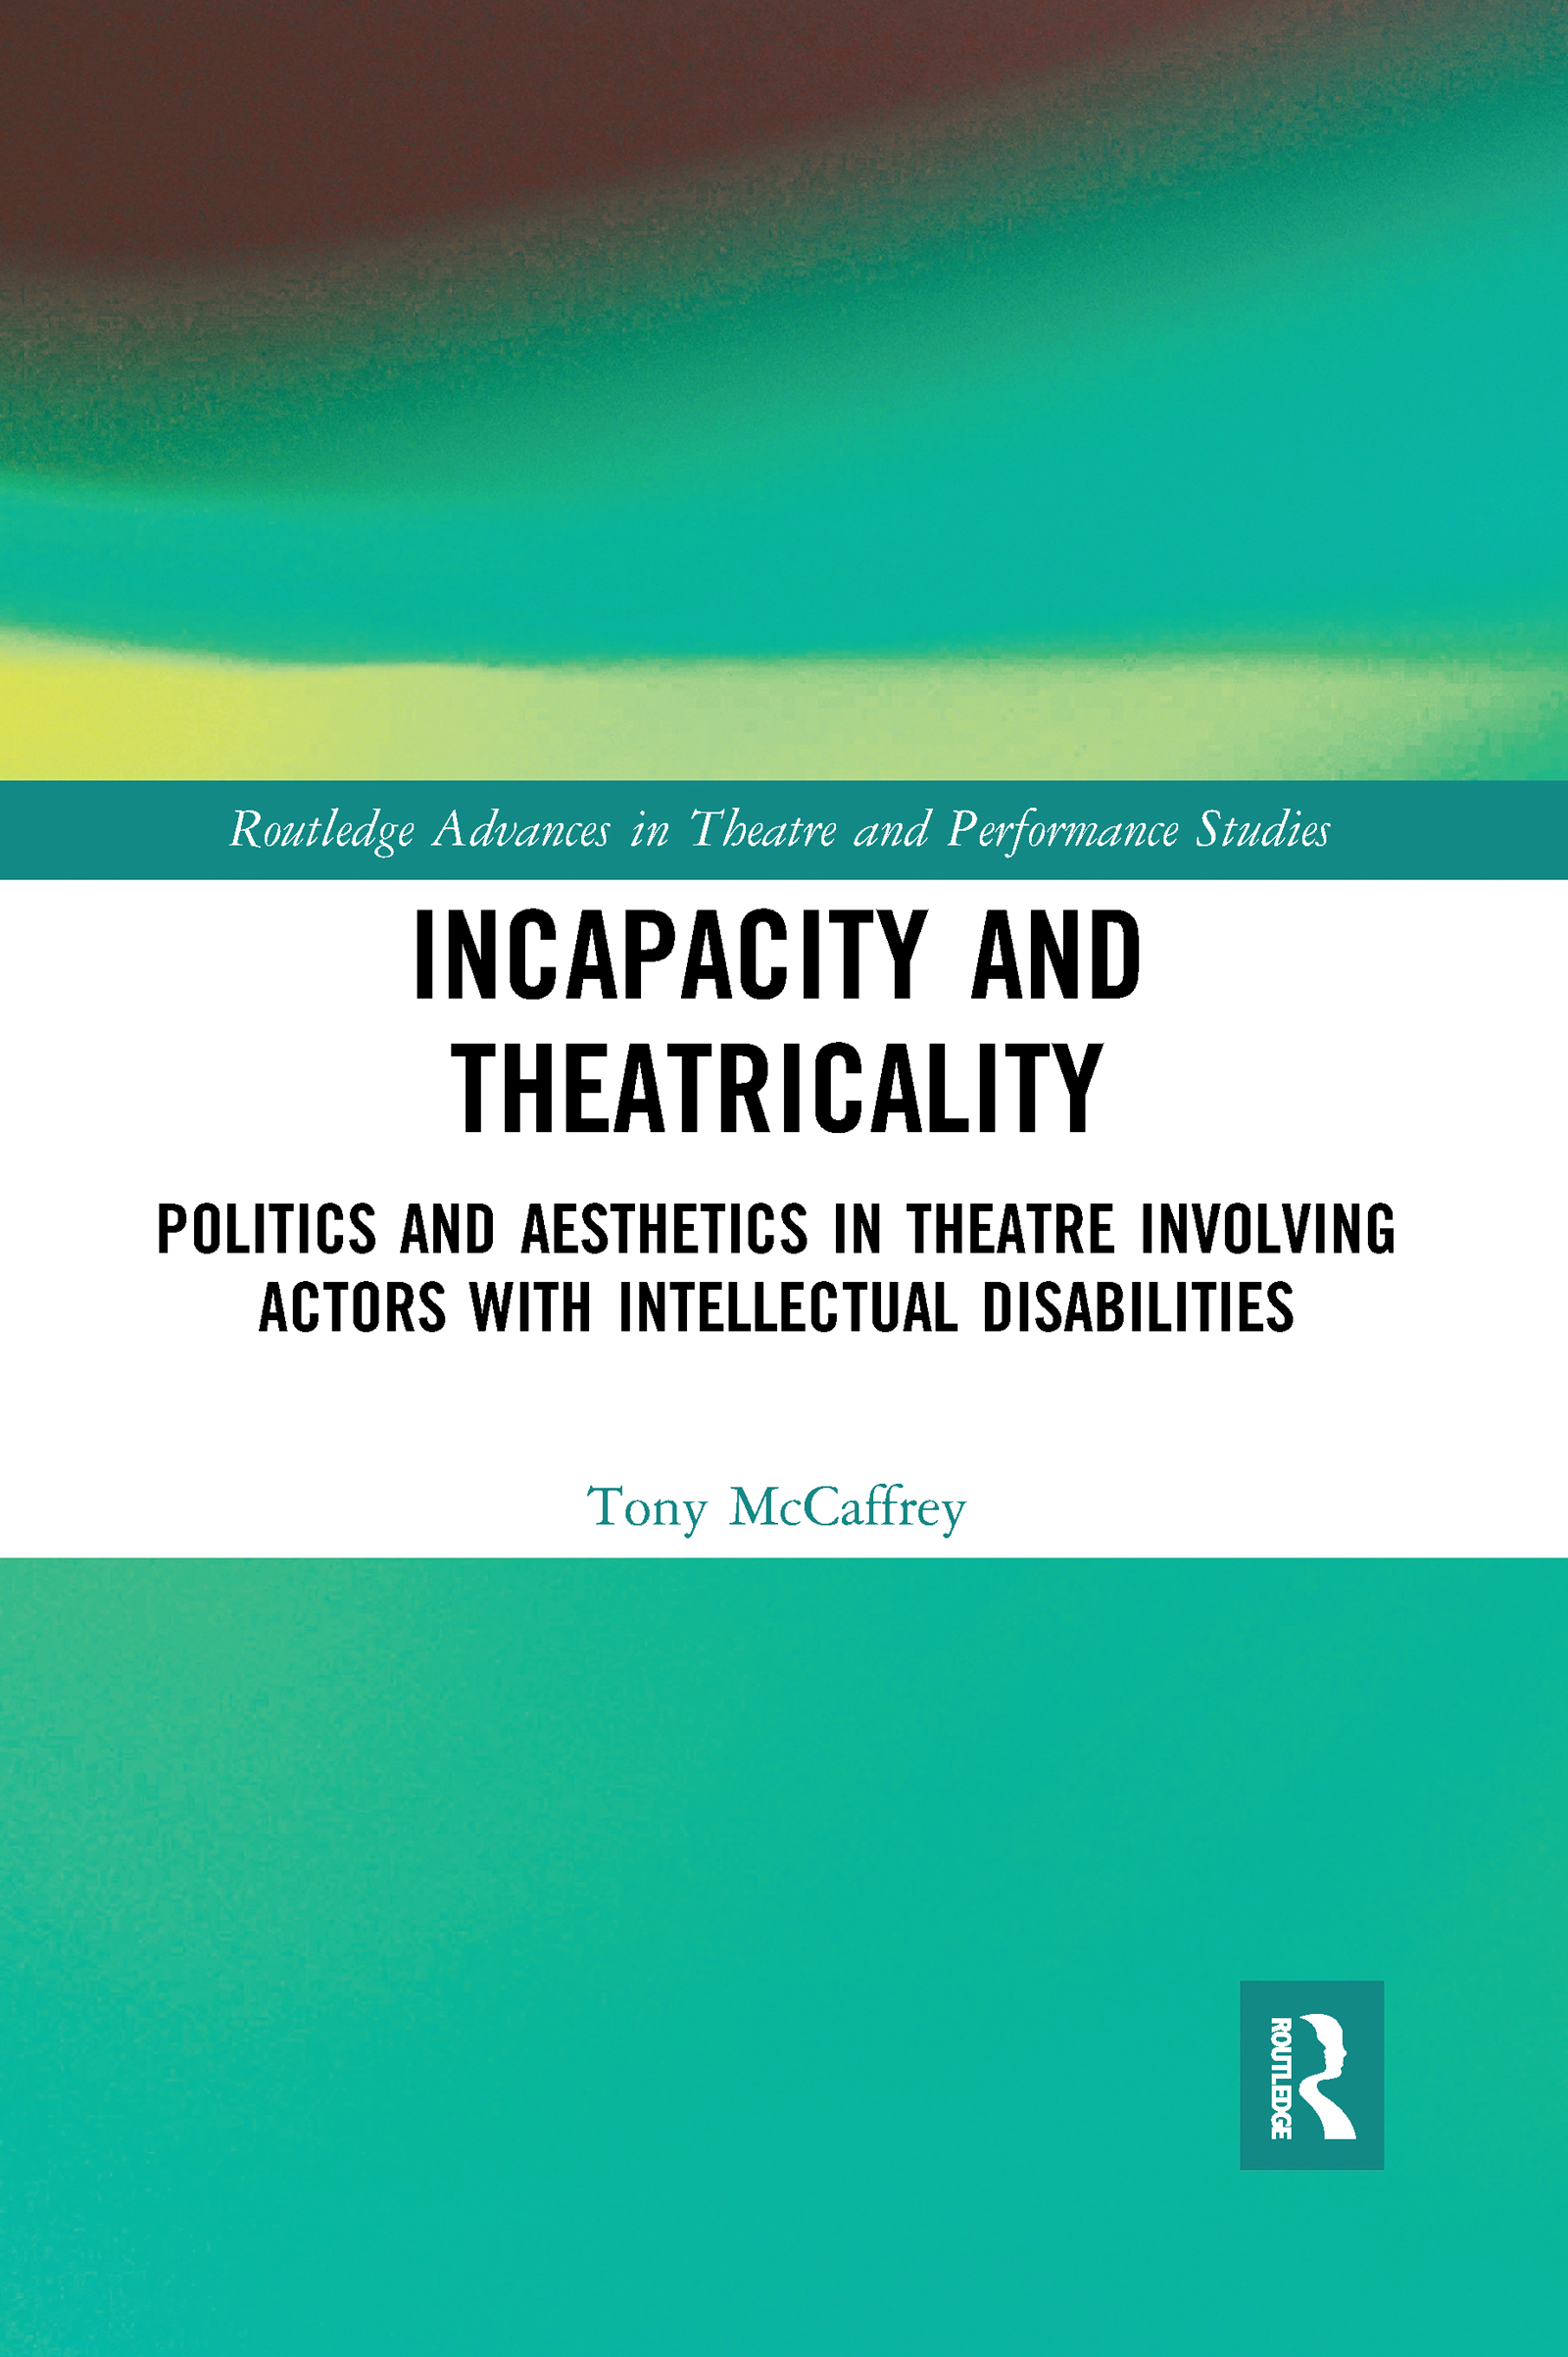 Incapacity and Theatricality